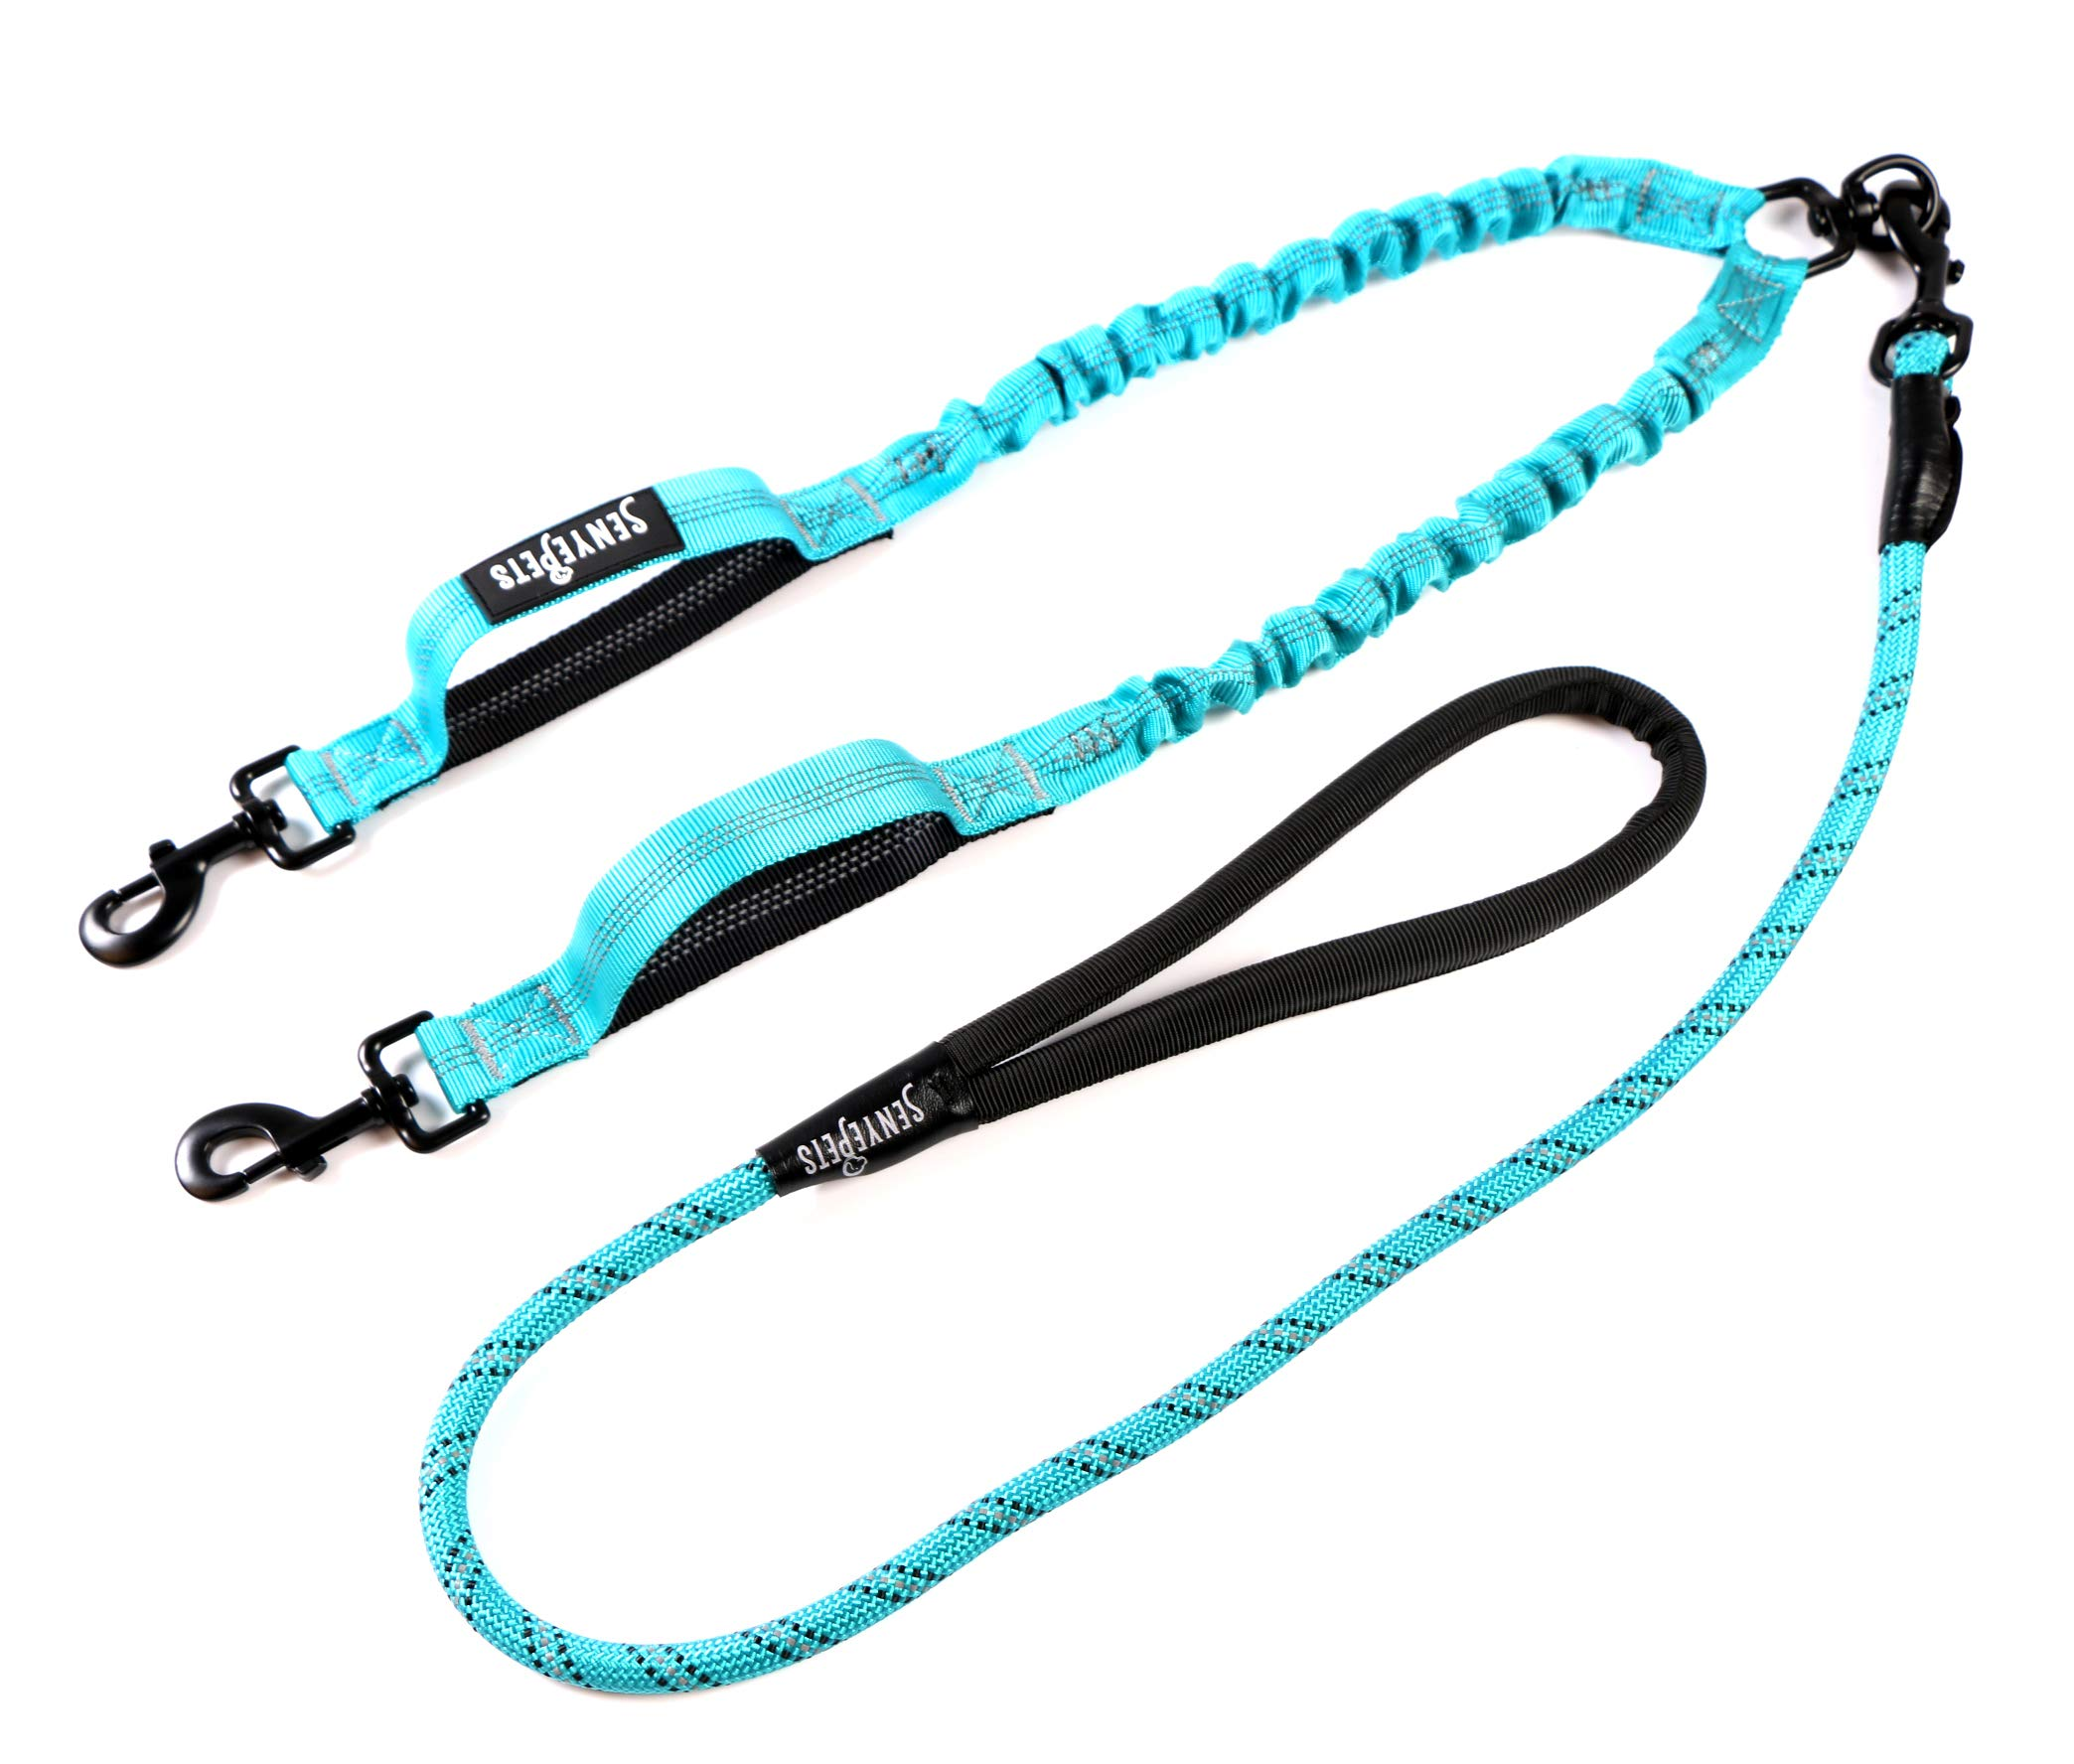 SENYEPETS Double Dual Dog Leash Comfortable Shock Absorbing Reflective Bungee Two Dogs (Blue)